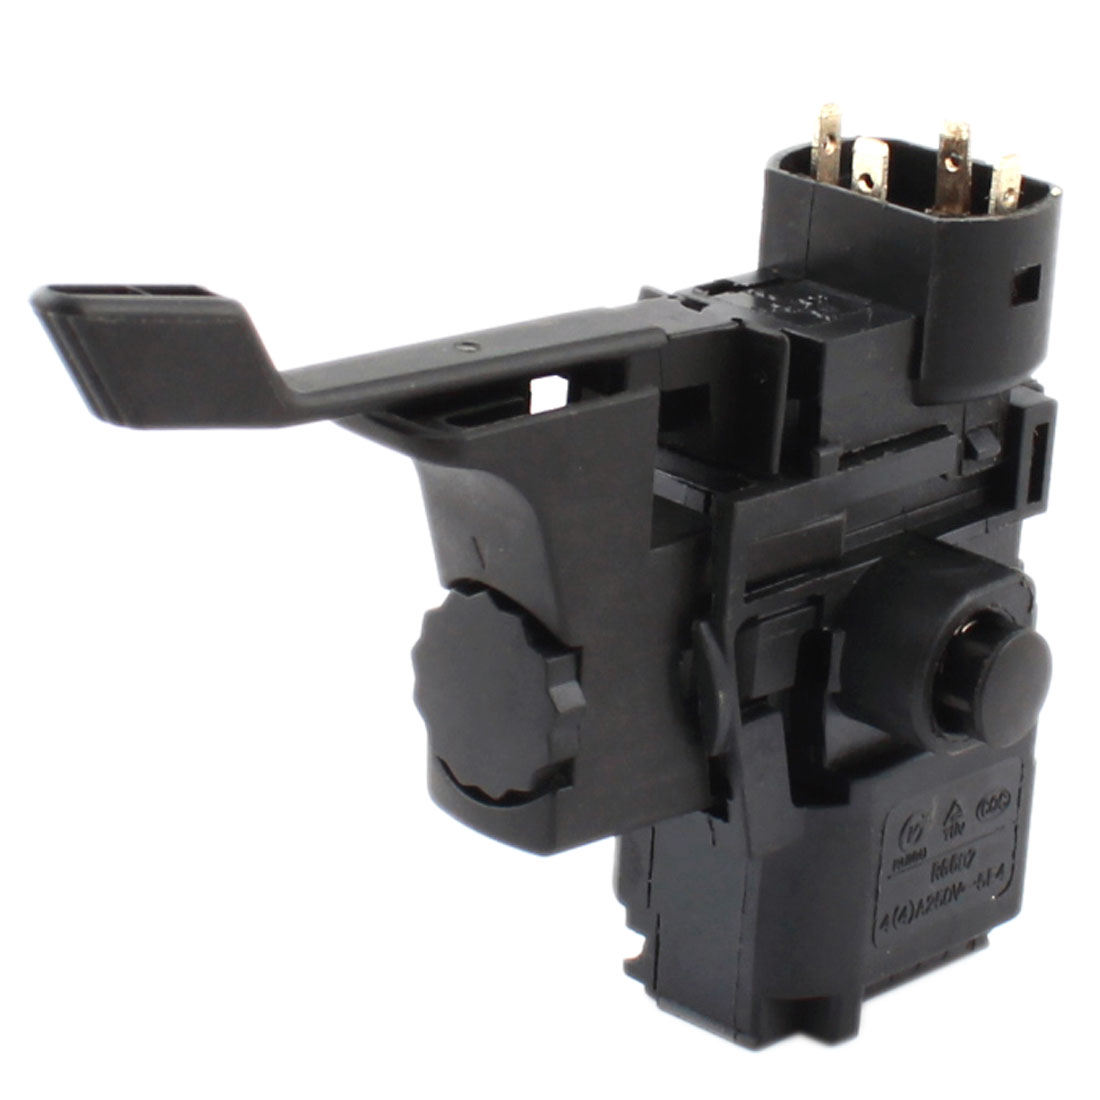 AC 250V 6A Rotary Direction Change Trigger Switch Black for Bosch 24